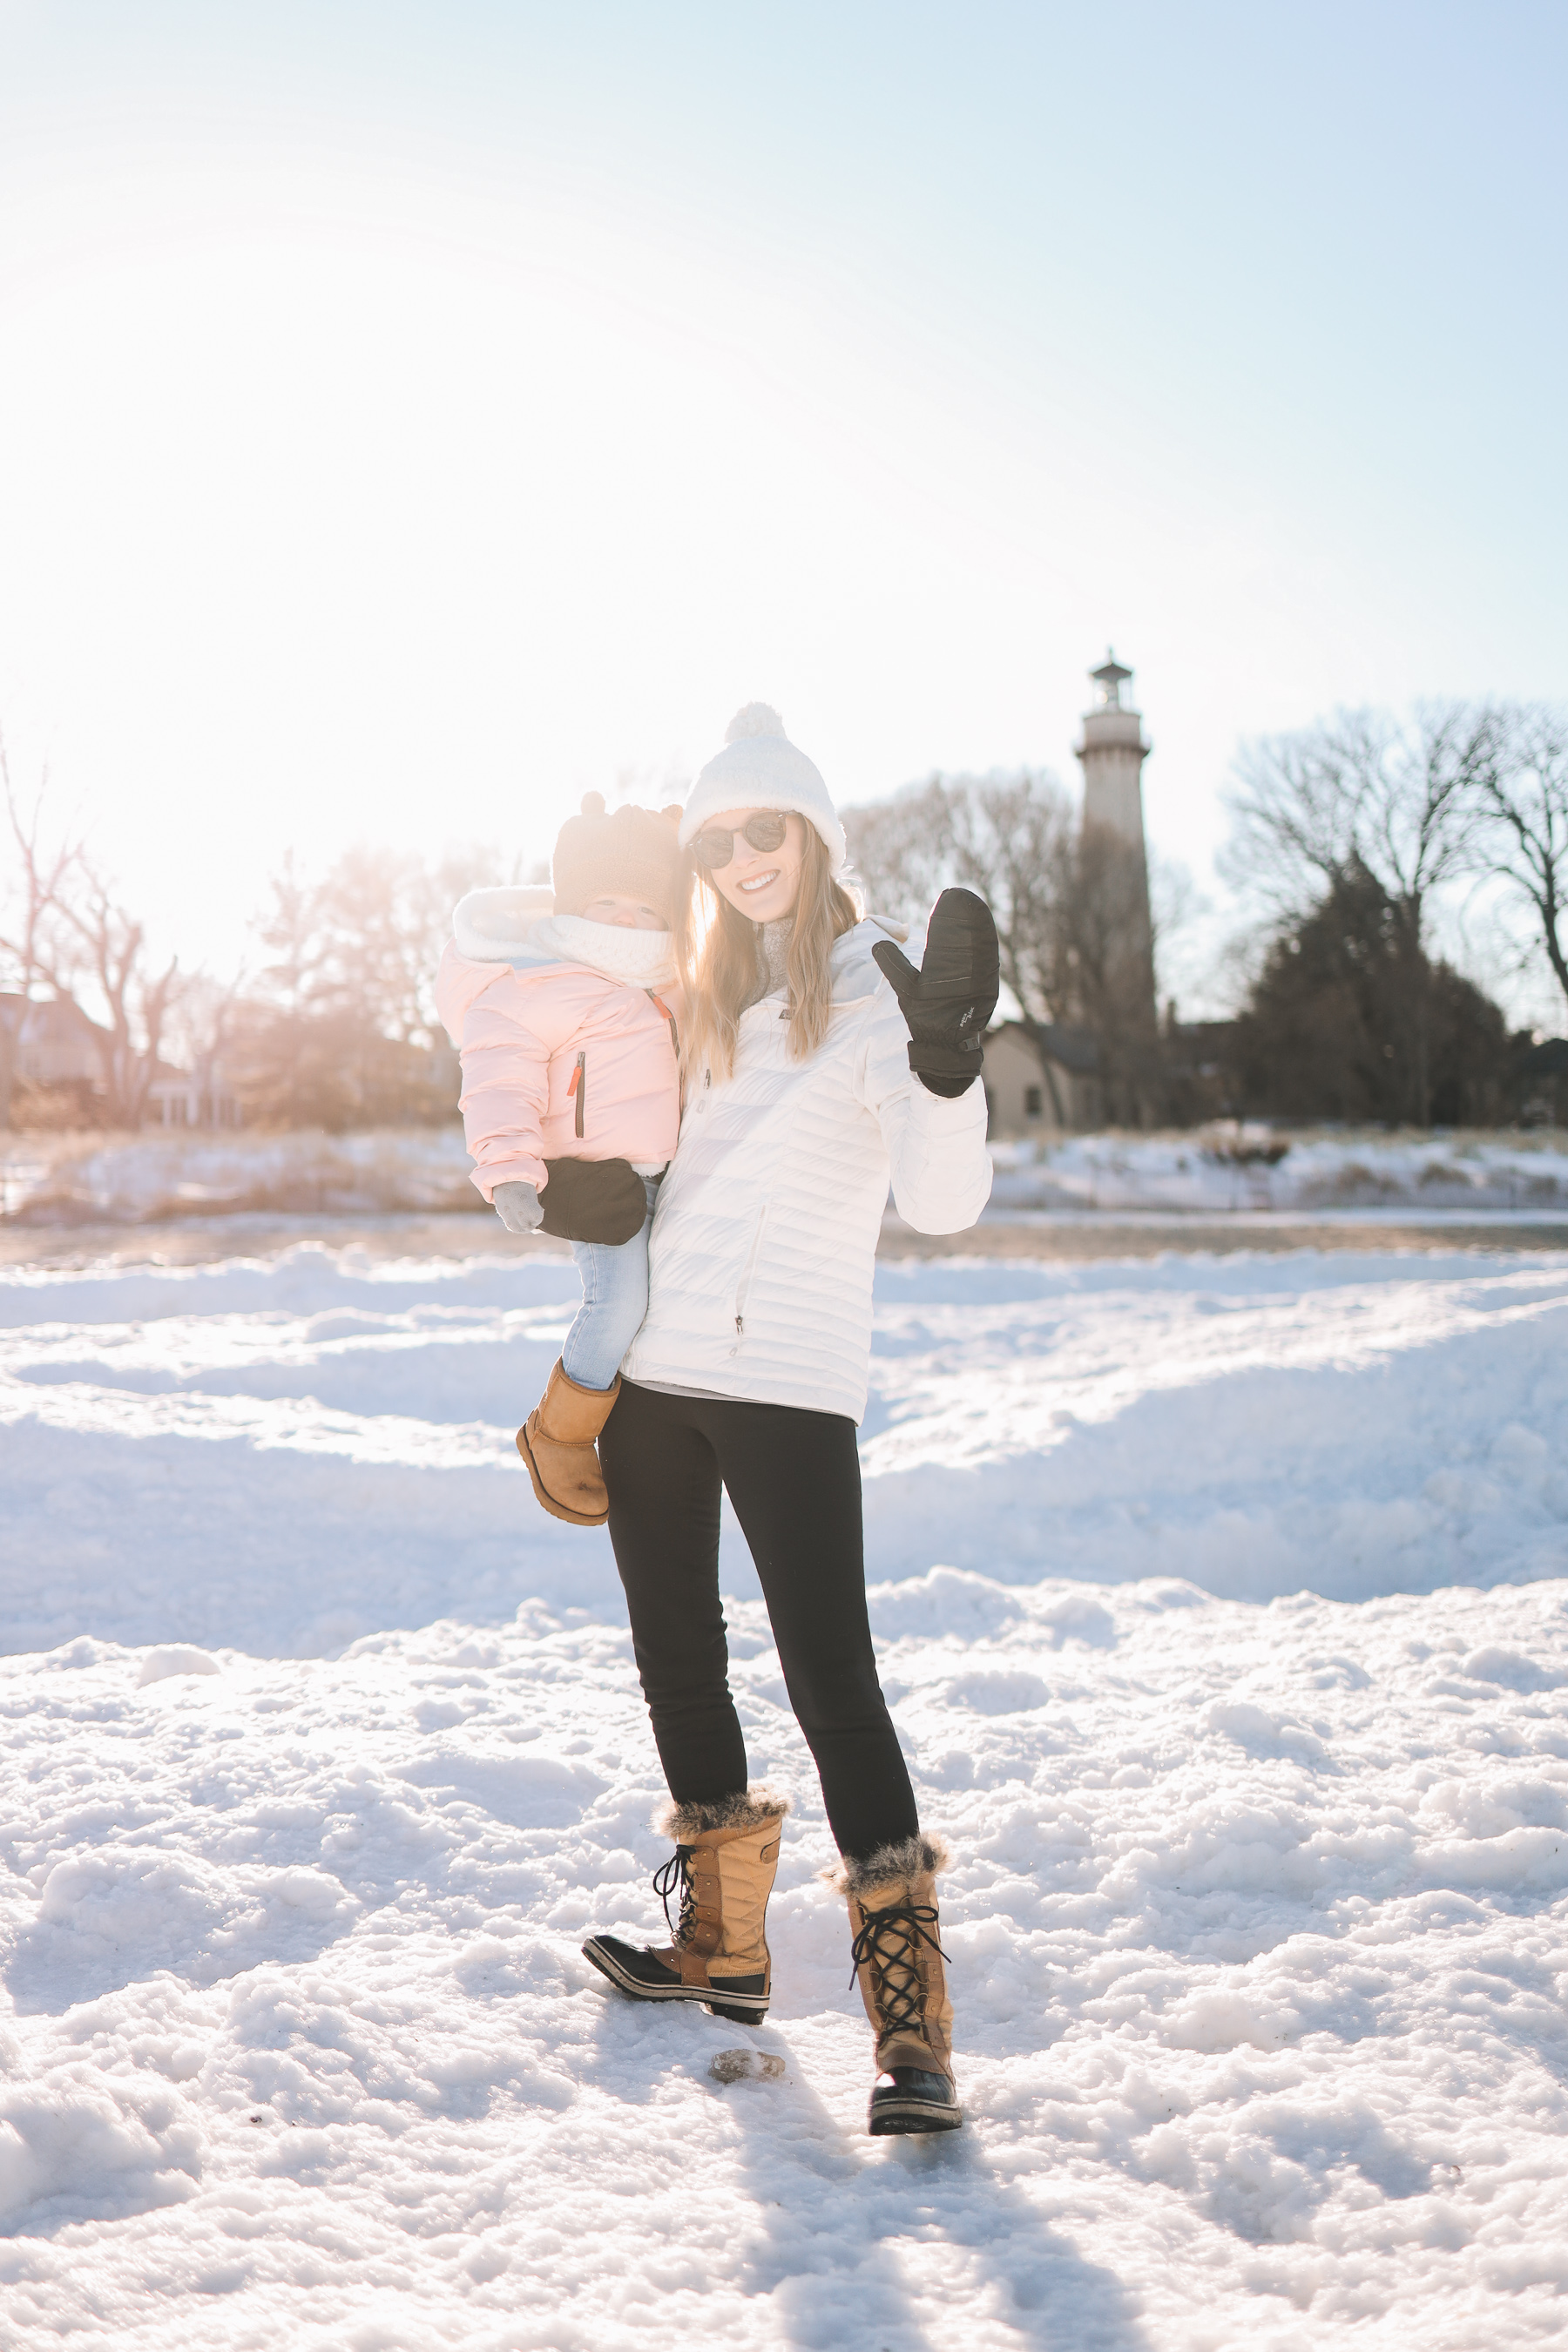 Backcountry winter gear | Lighthouse Beach Evanston